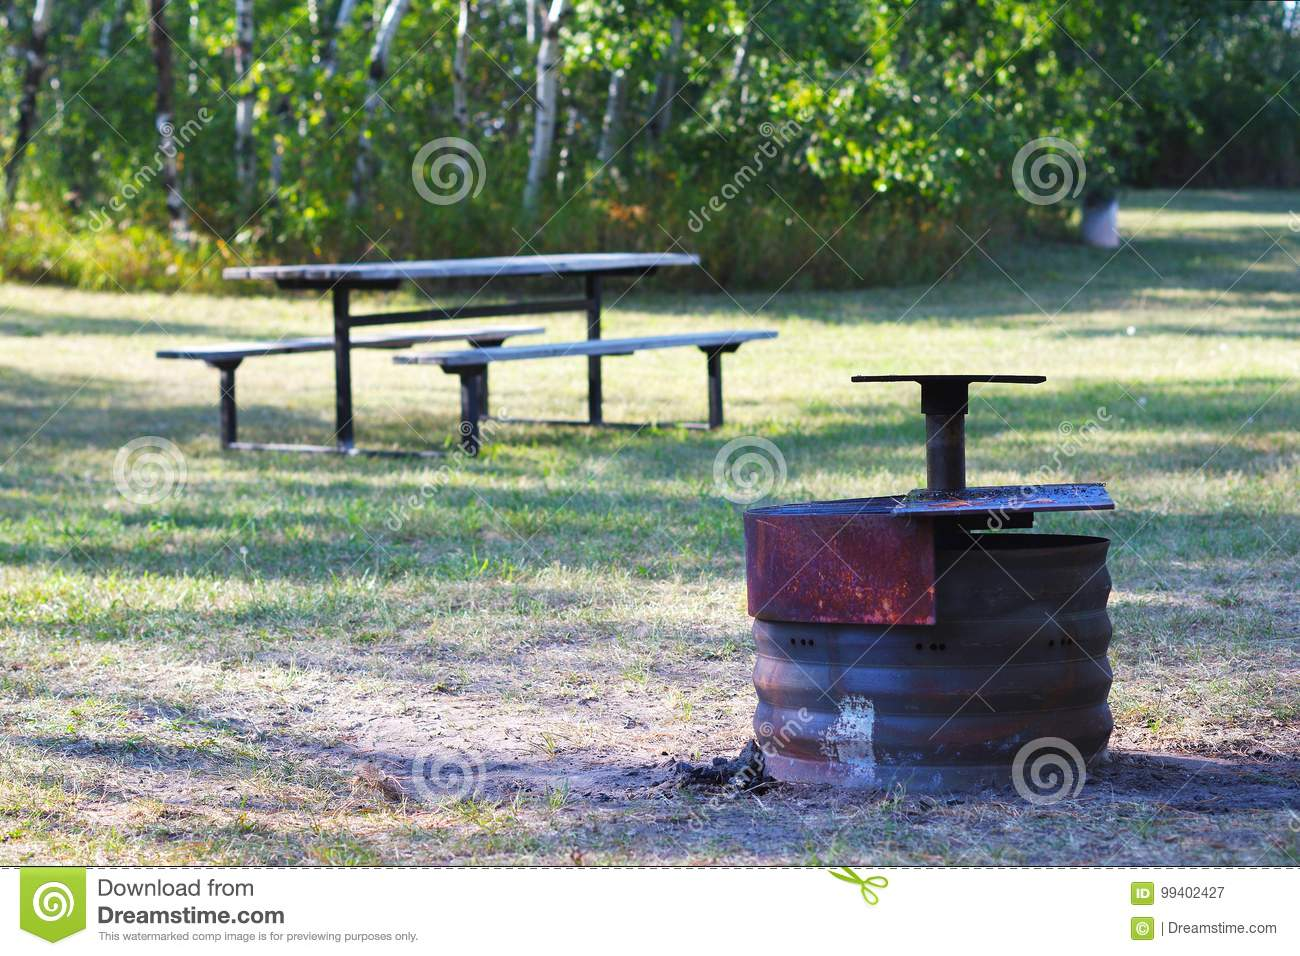 Fire Pit With Picnic Table Stock Image Image Of Empty - Fire picnic table